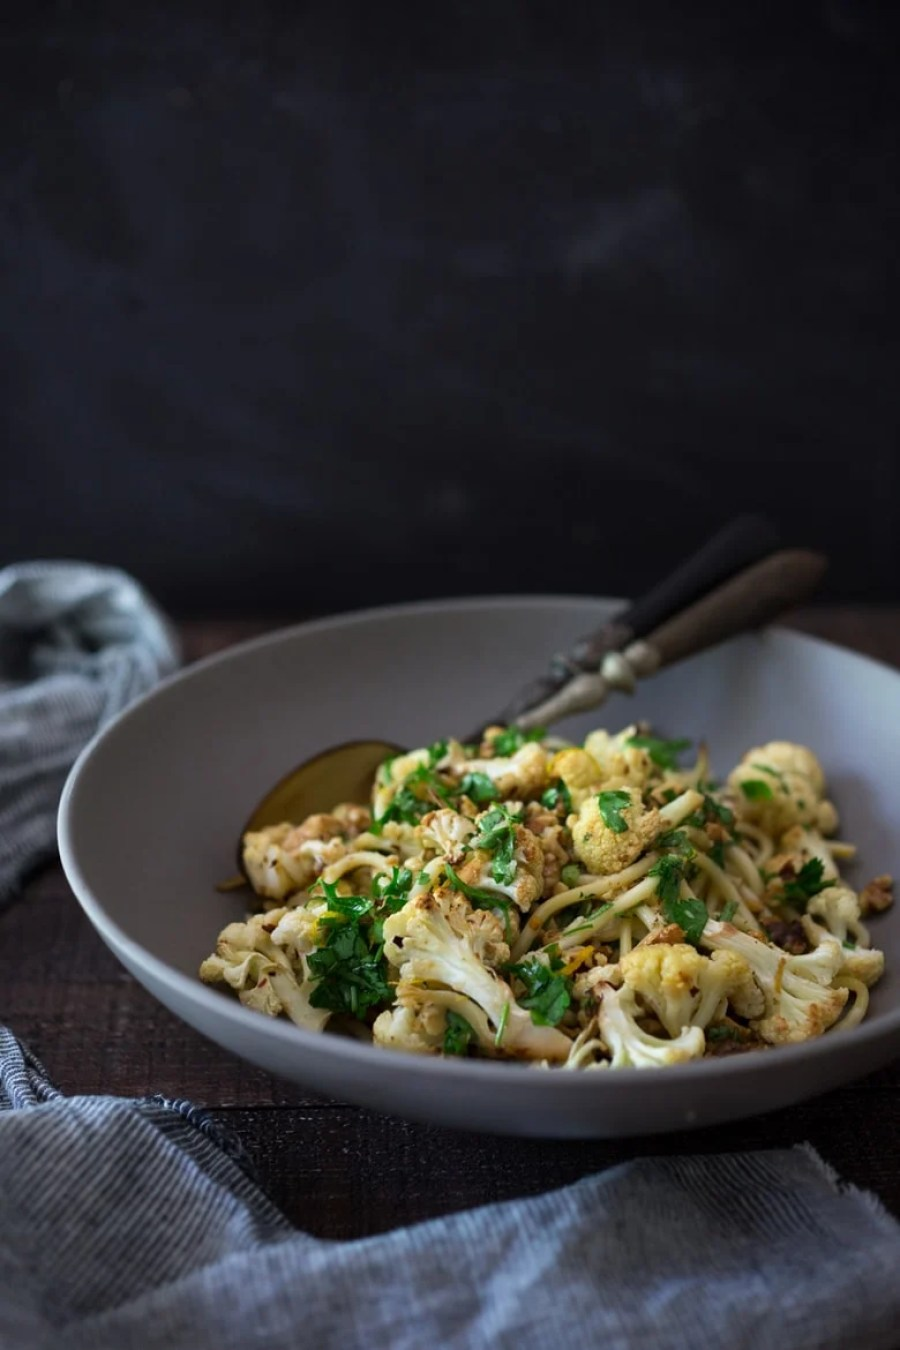 Roasted Cauliflower Pasta with Toasted Walnuts, Parsley, Garlic and Lemon Zest - a delicious vegan dinner that can be made in 30 minutes!   www.feastingathome.com